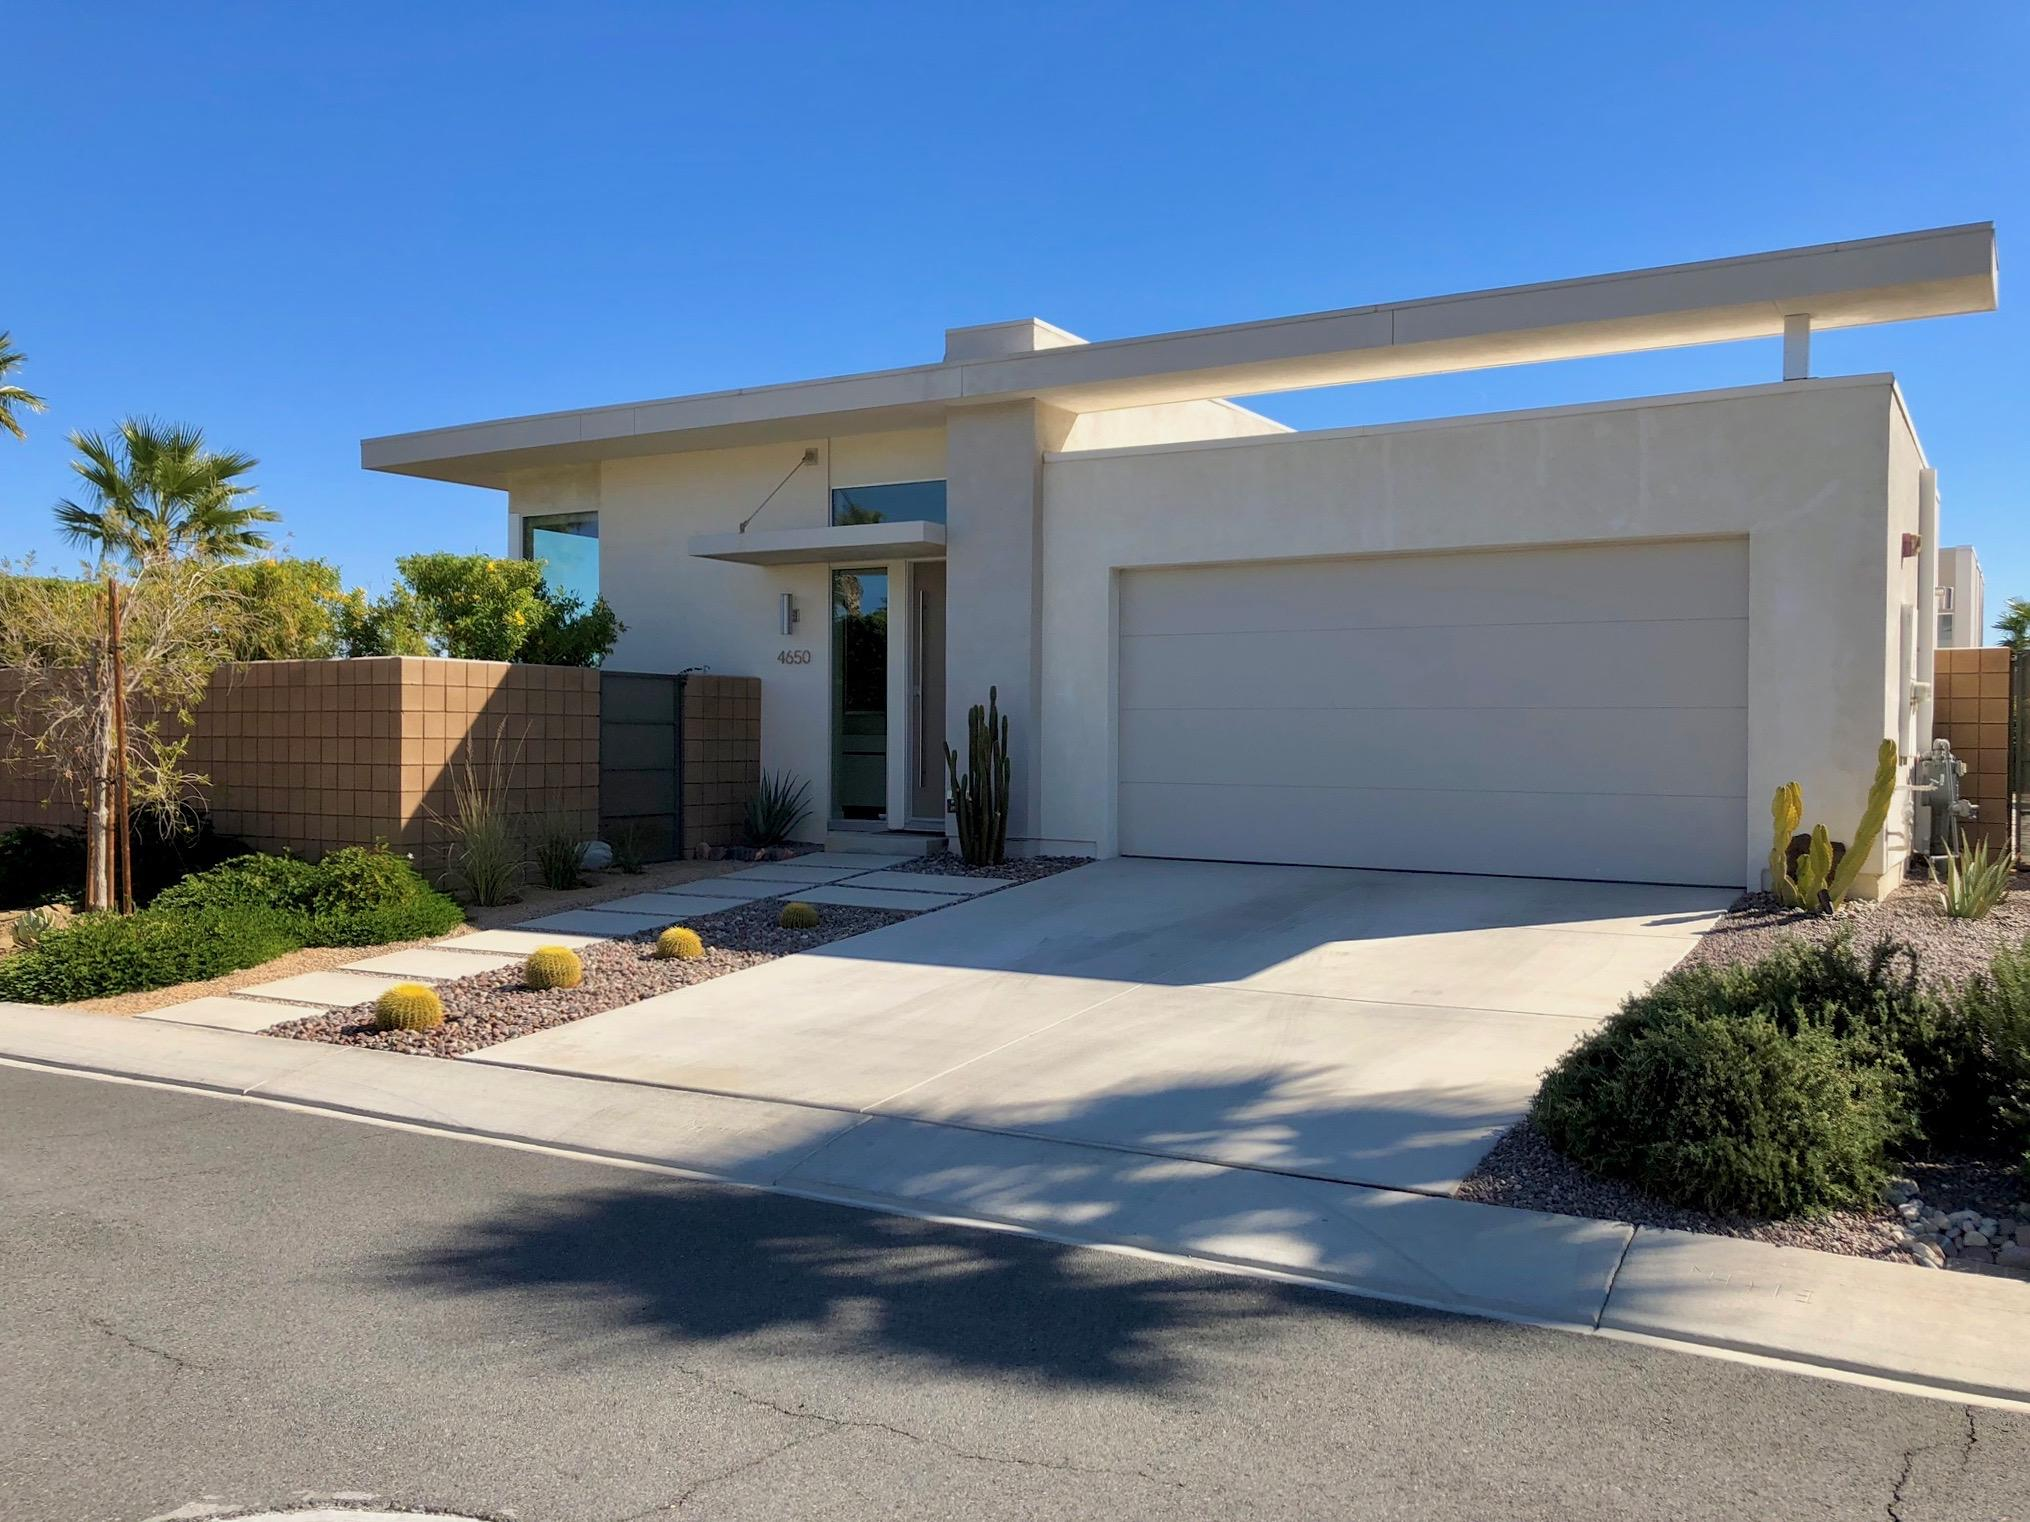 Photo of 4650 Kellogg Way, Palm Springs, CA 92262